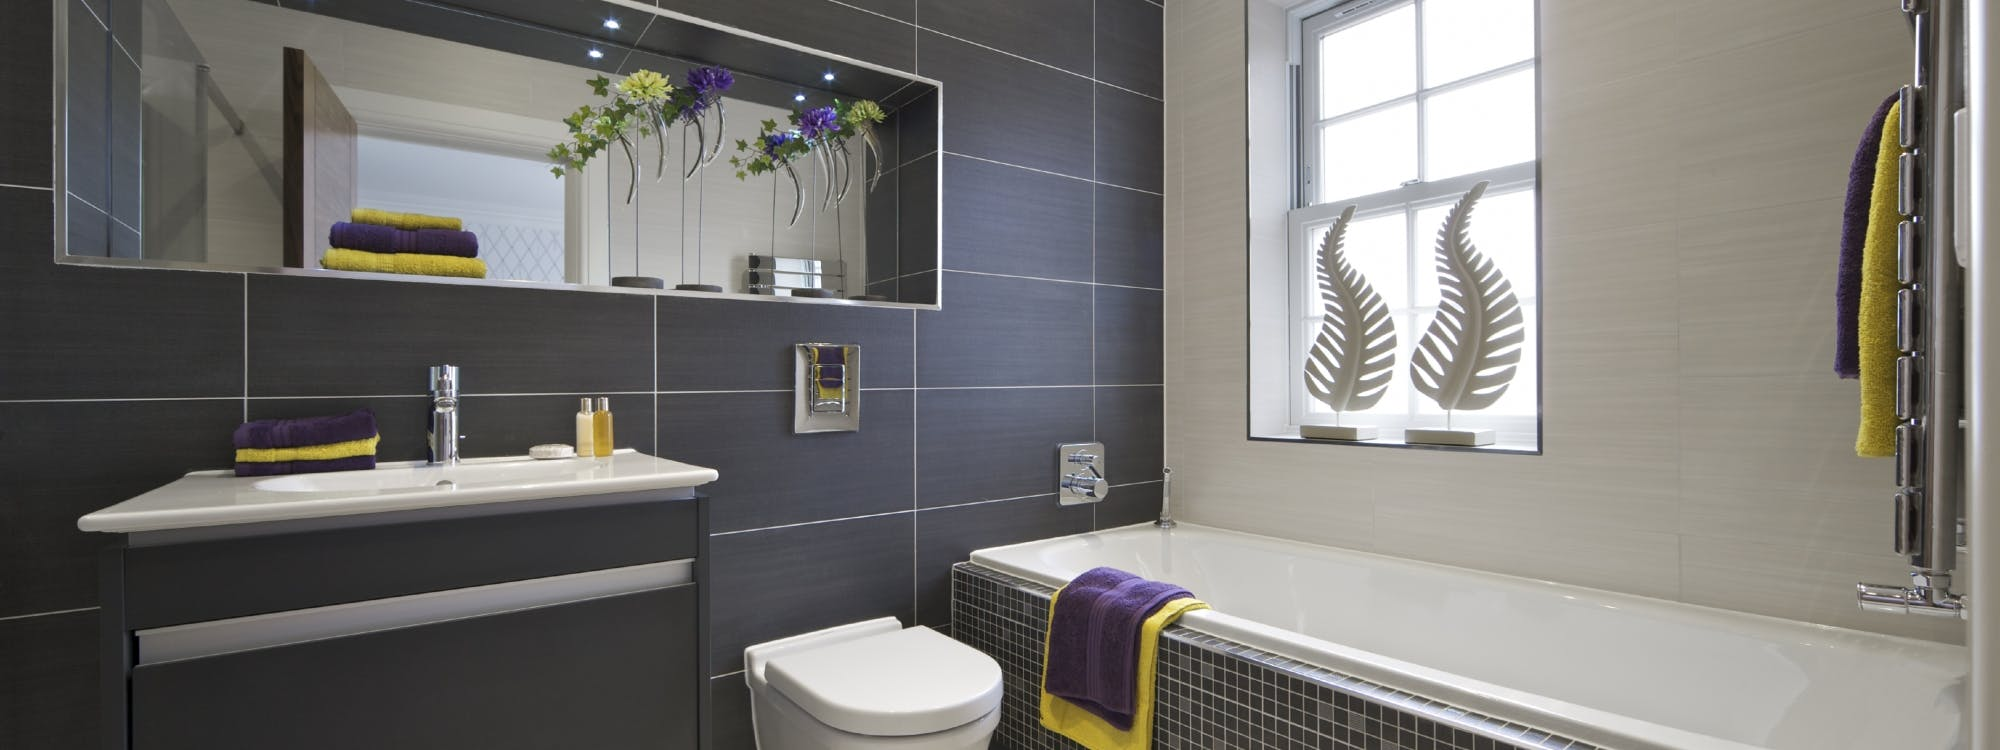 small bathrooms - designed, supplied & installed